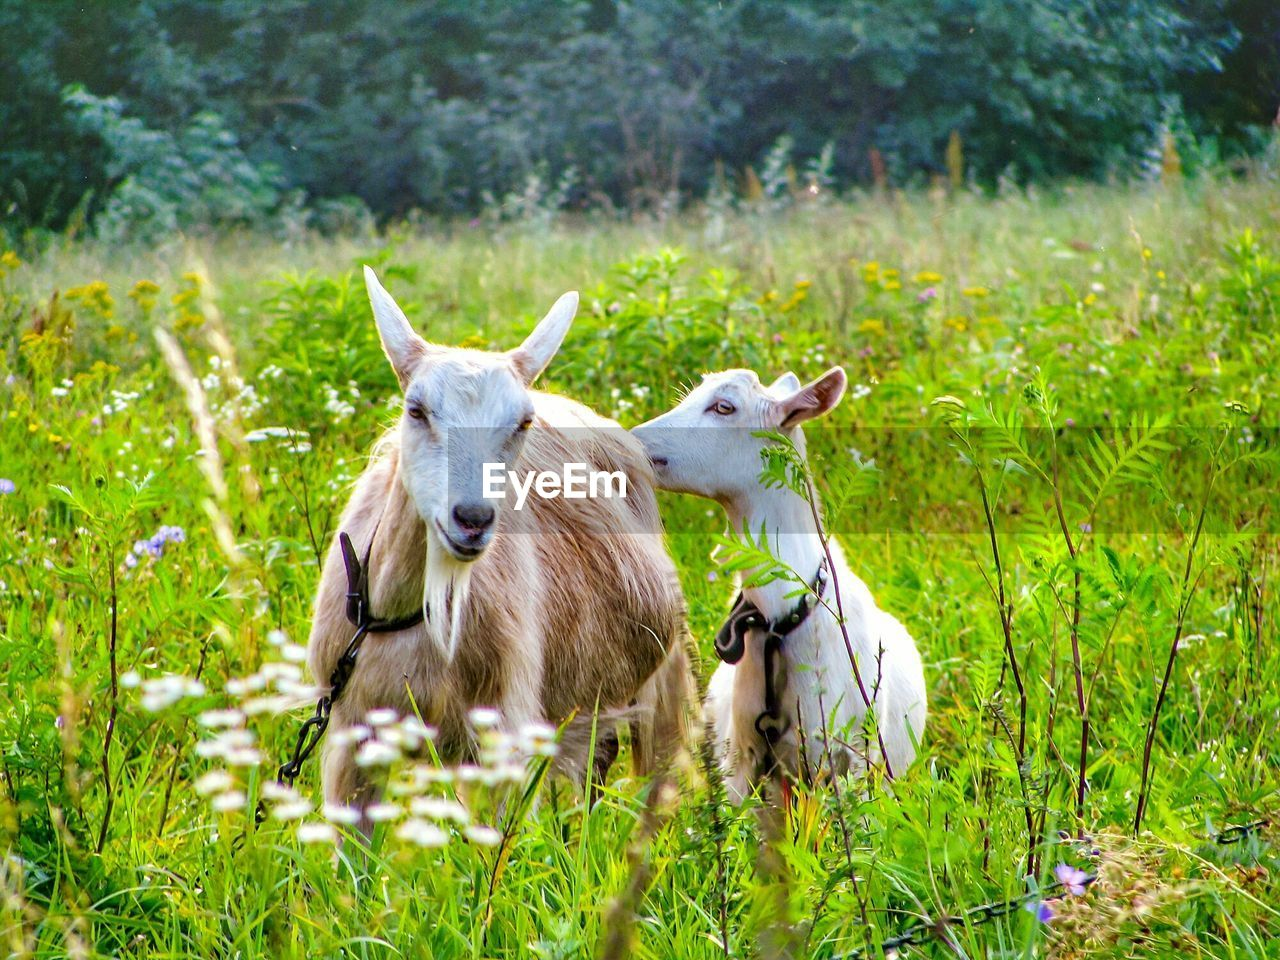 plant, animal, animal themes, grass, domestic, livestock, domestic animals, pets, mammal, vertebrate, land, field, green color, nature, group of animals, growth, day, no people, young animal, outdoors, herbivorous